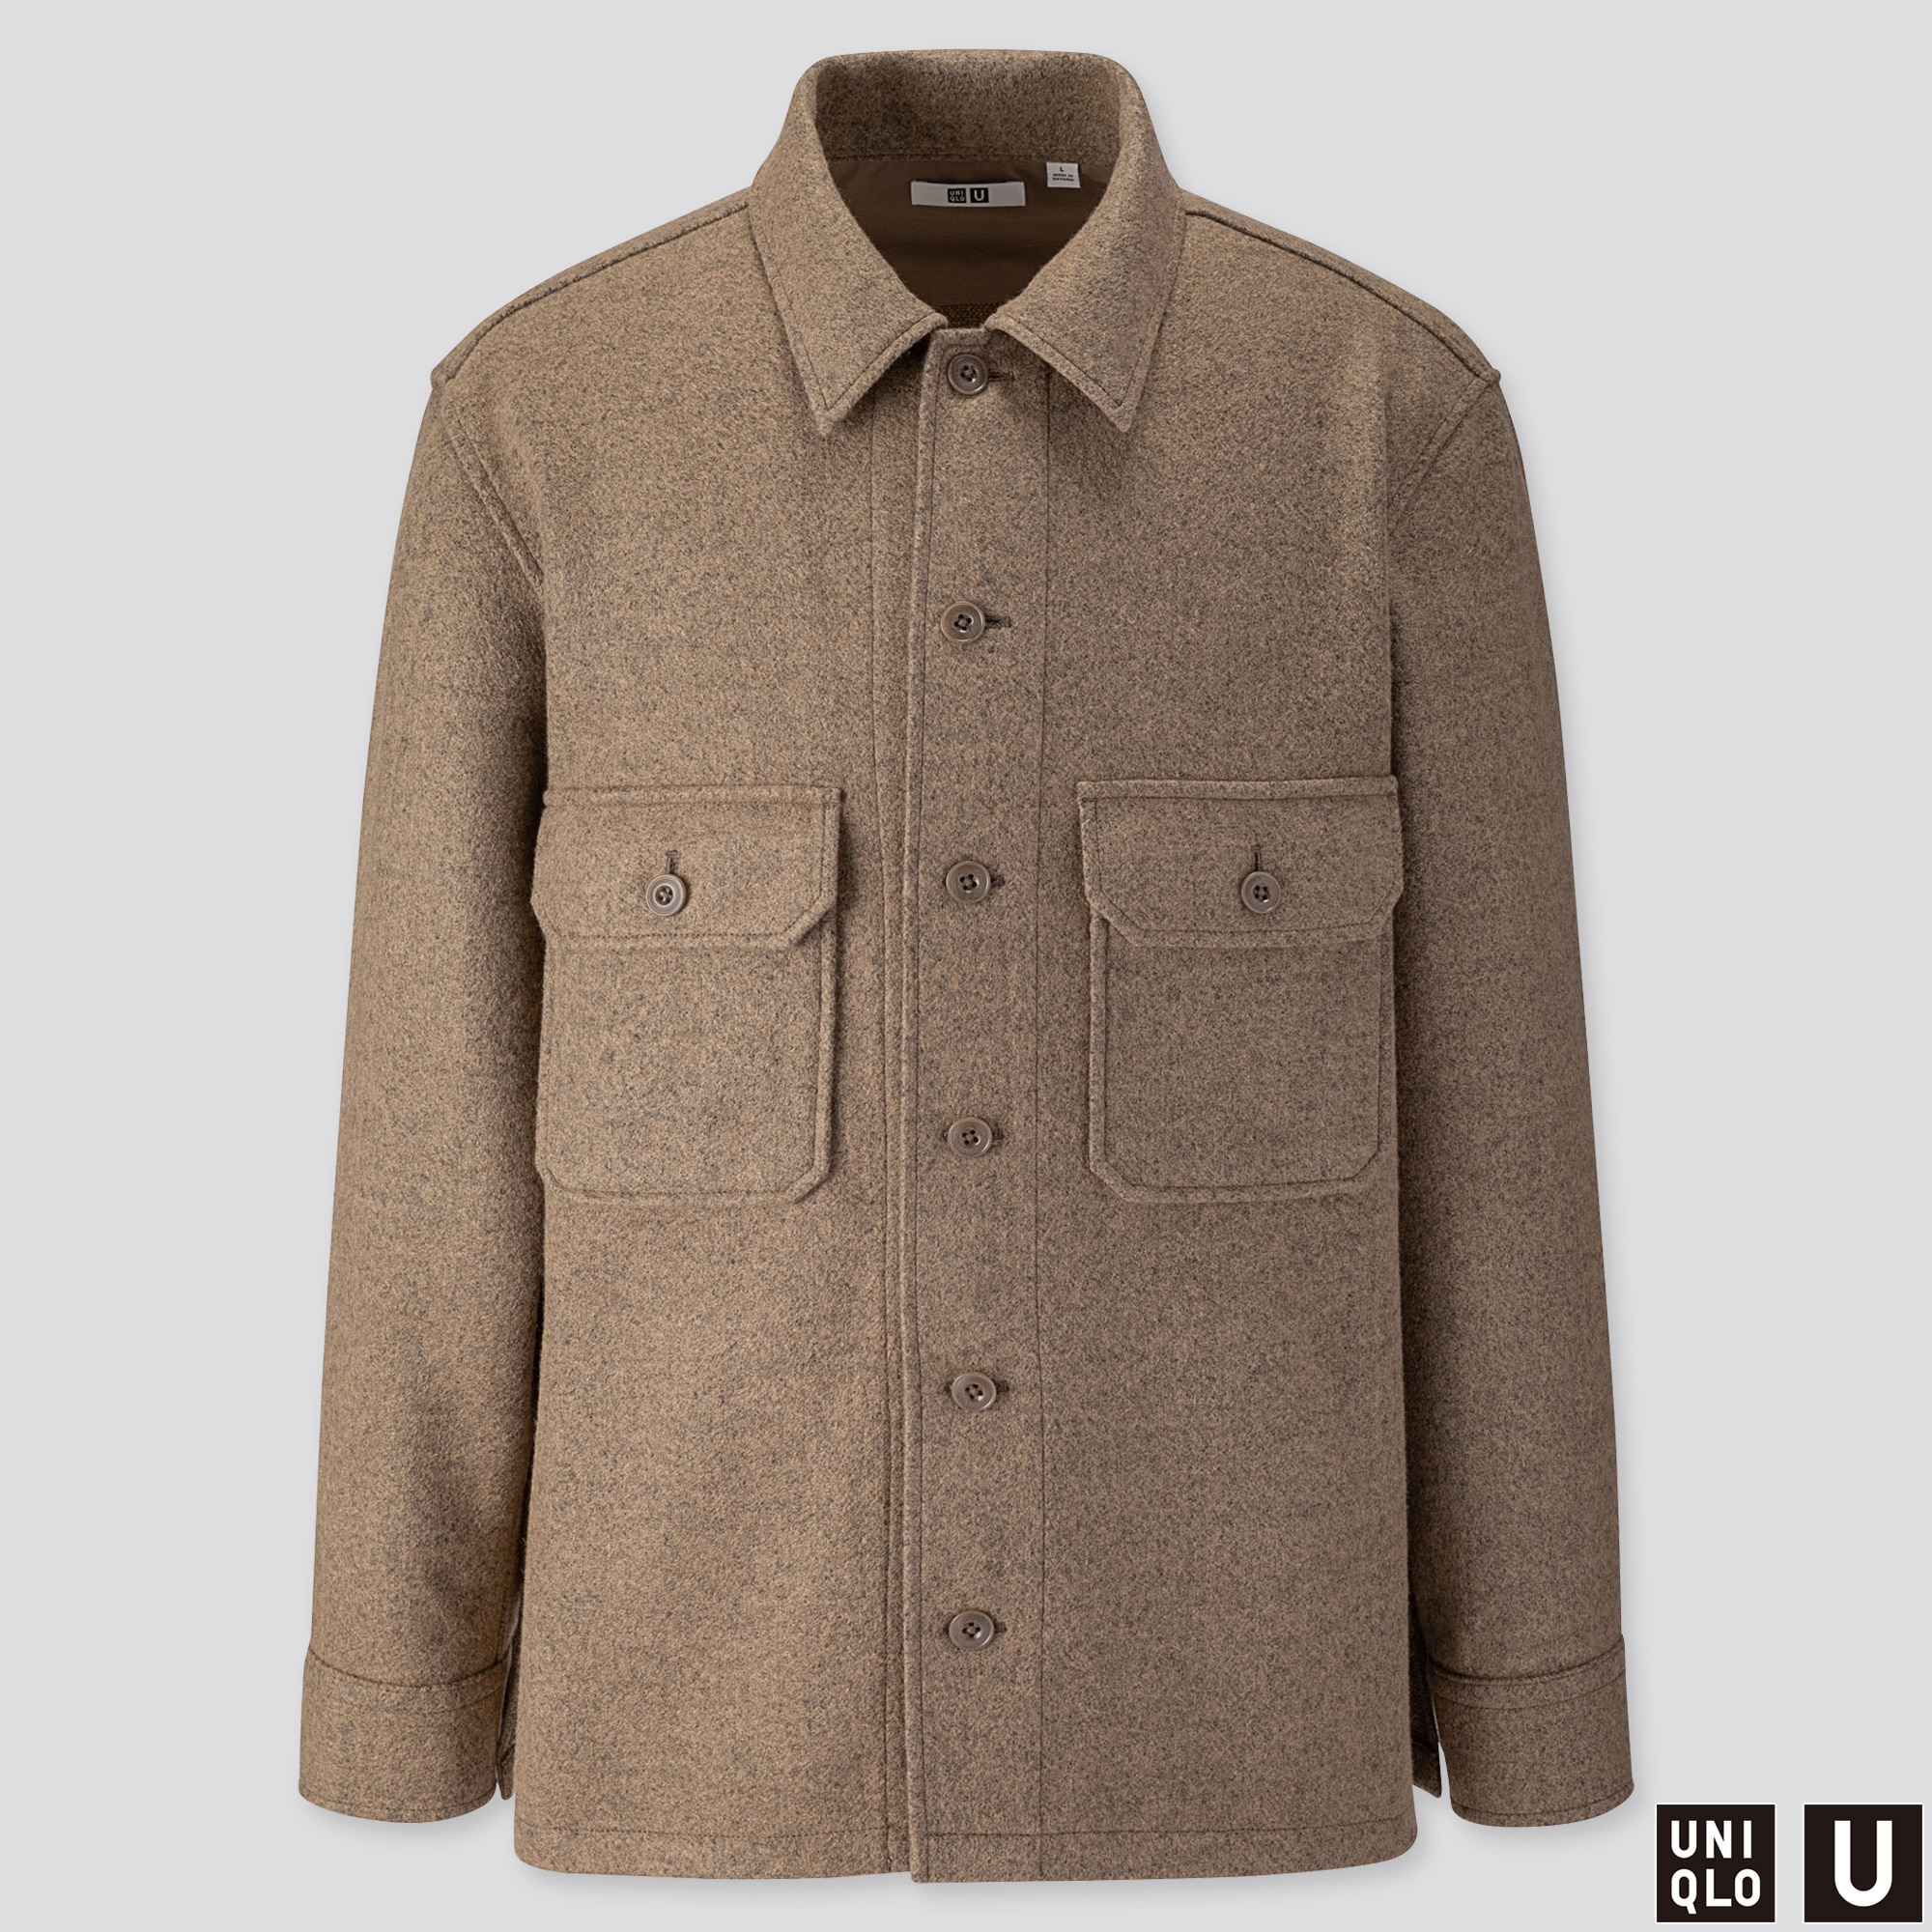 MEN U LONG-SLEEVE FLEECE SHIRT JACKET | UNIQLO US